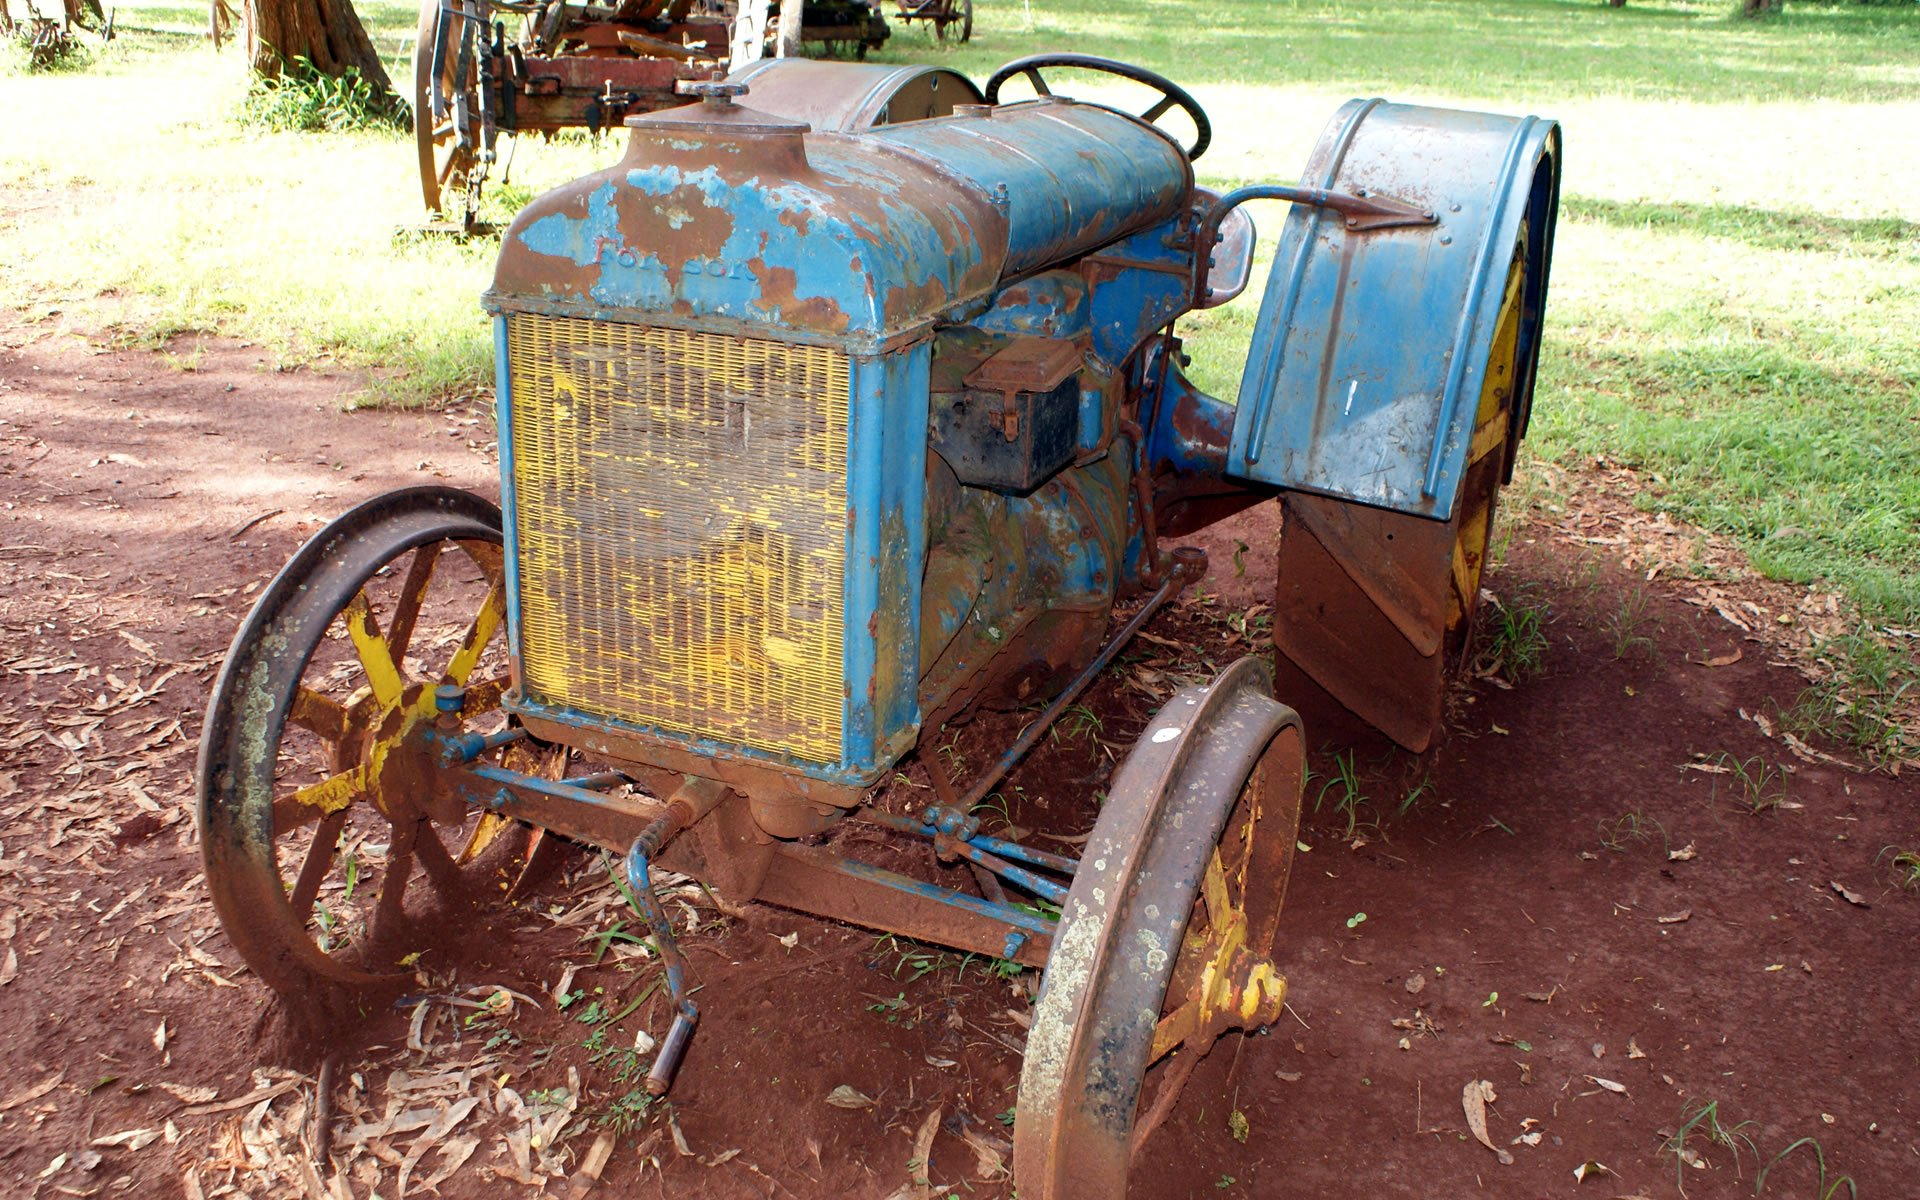 Within the nicely manicured compound at the Karen Blixen Museum sits a 1922 Fordson tractor.